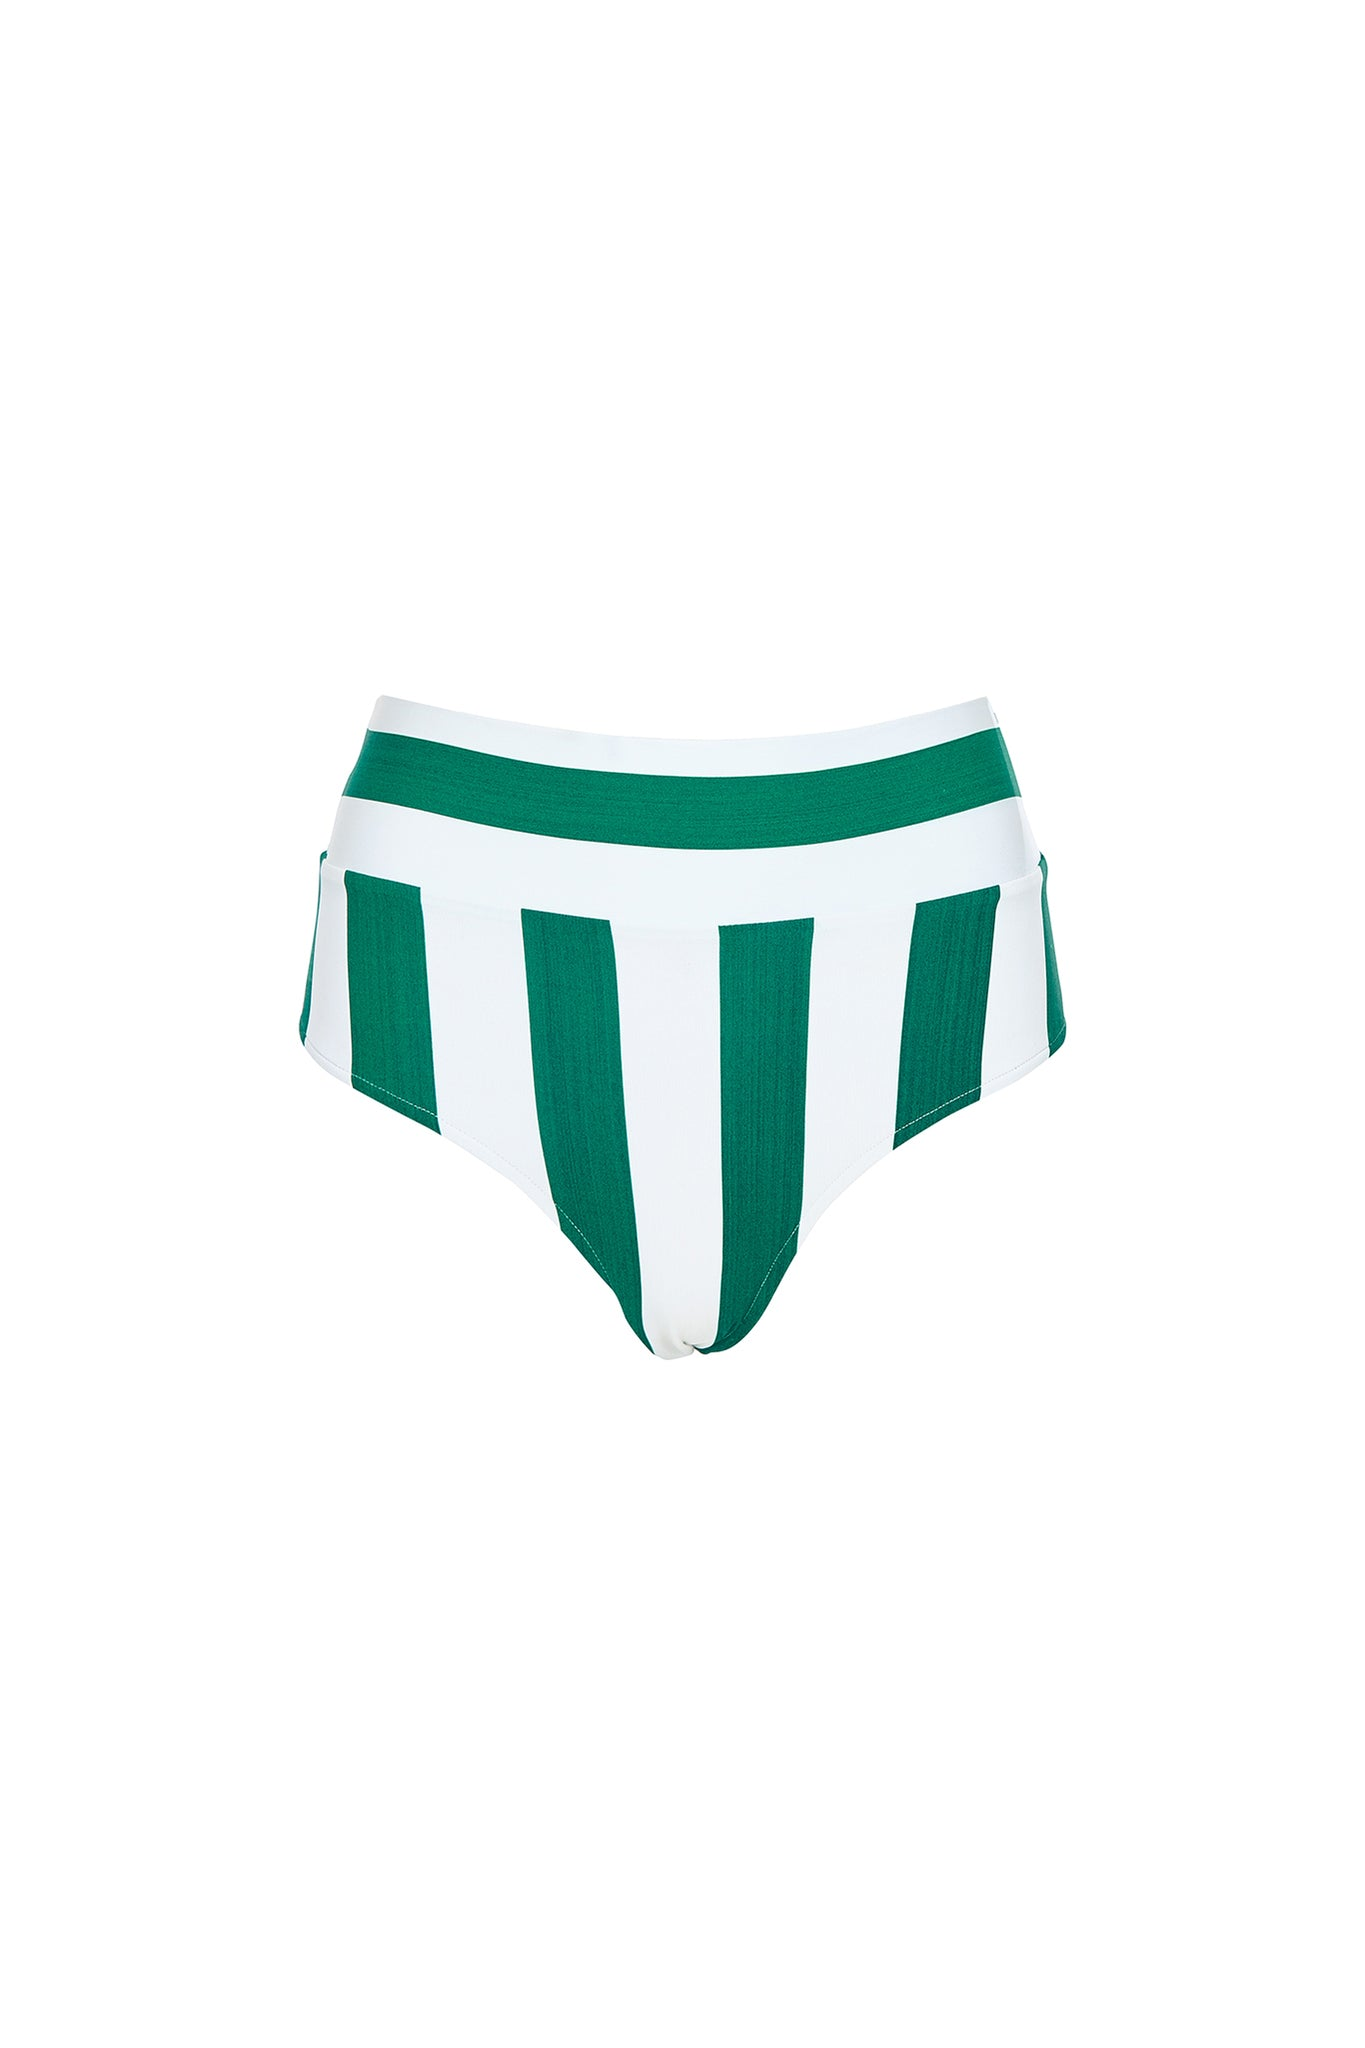 Henley high waist bottom in green and white stripe, product shot front